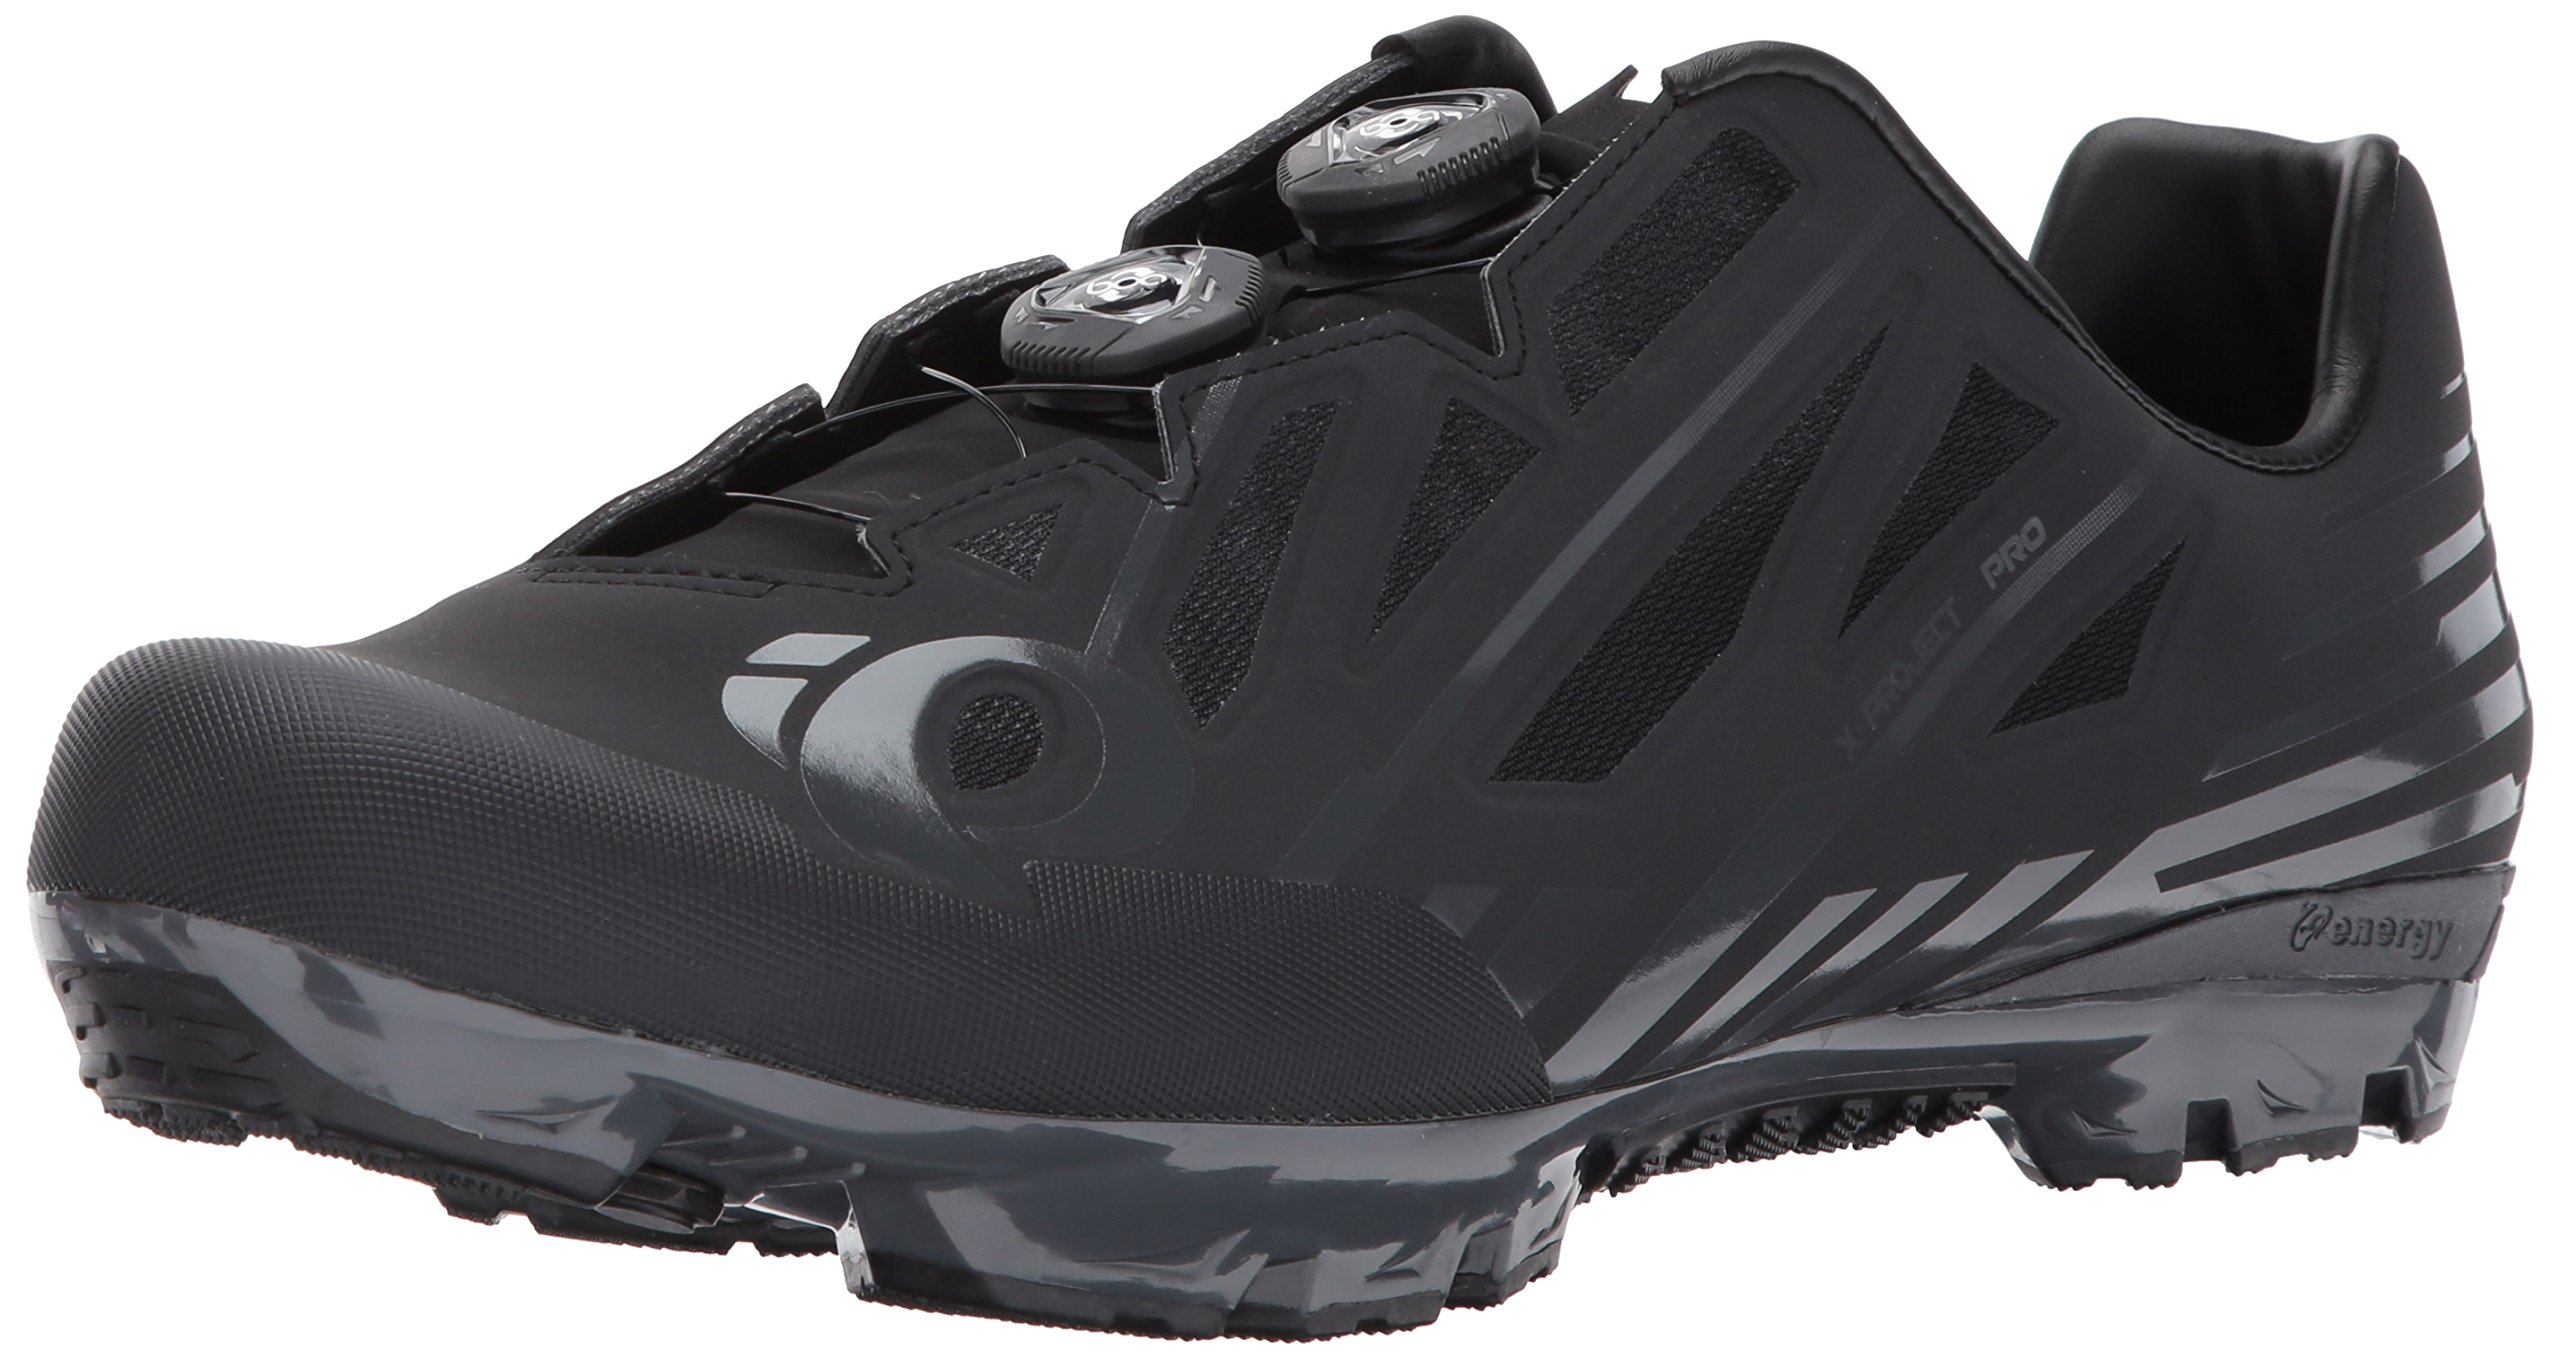 Pearl Izumi X-Project Pro Cycling-Footwear, Black/Shadow Grey, 46 EU/11.5 D US